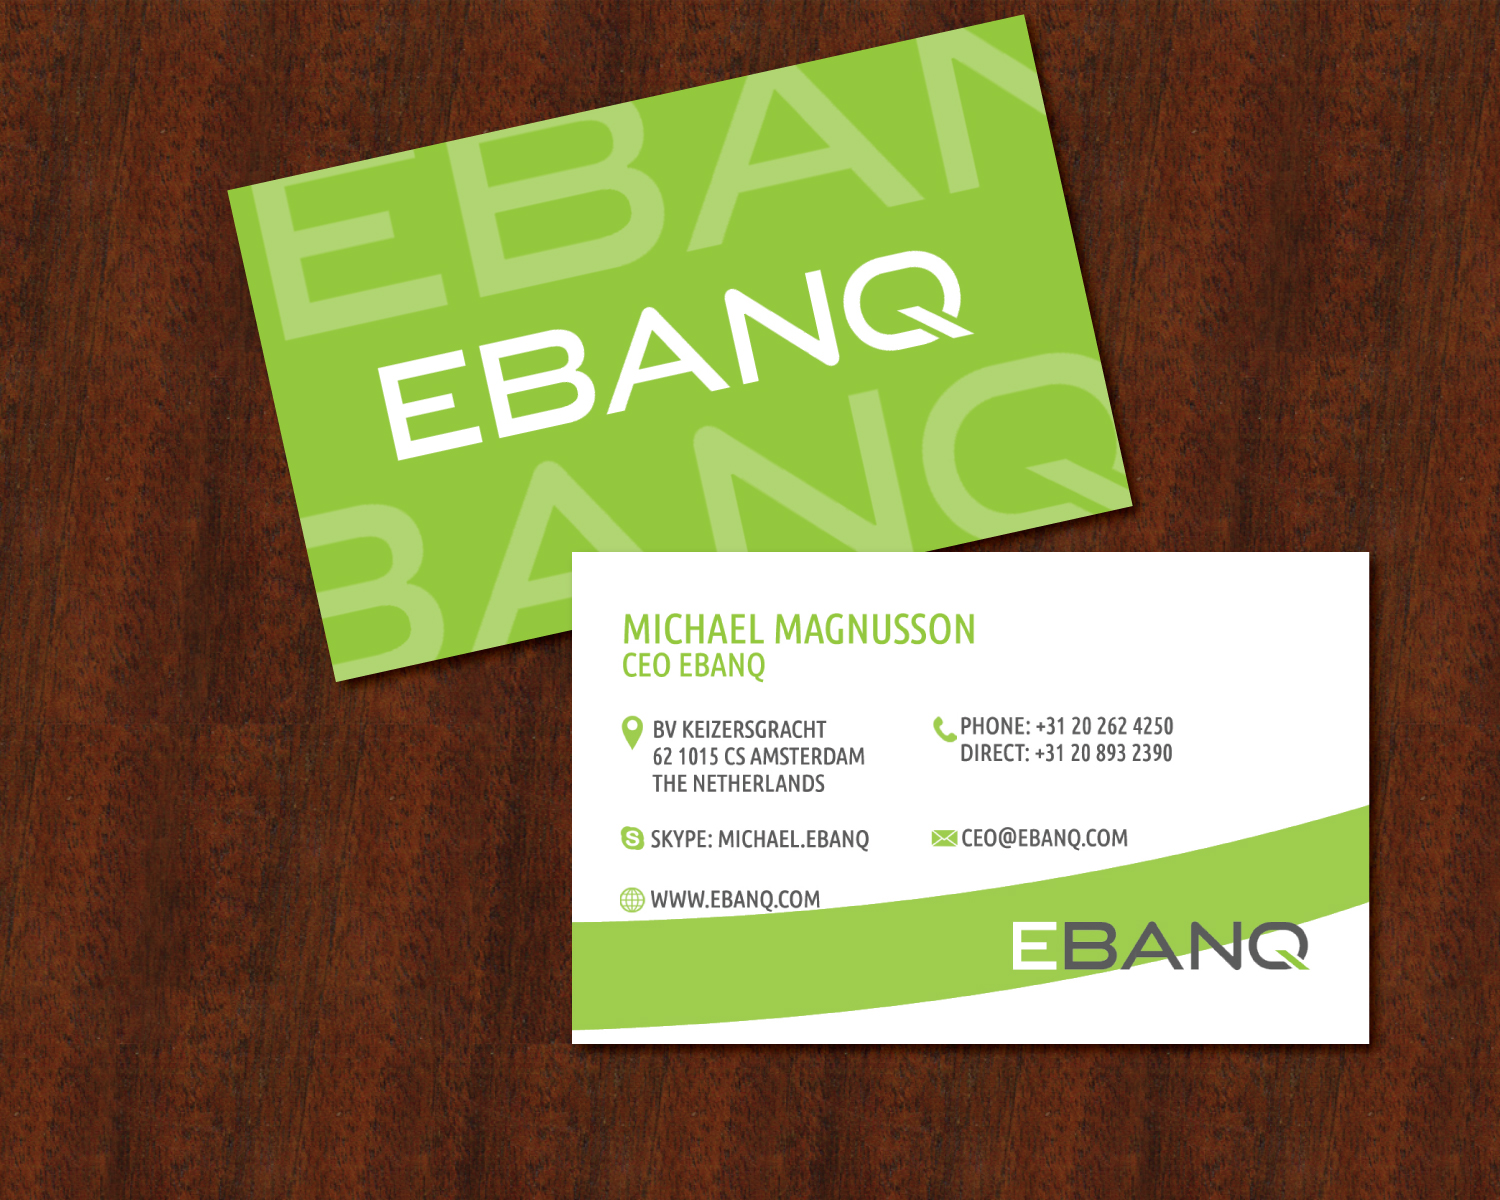 Modern professional financial business card design for ebanq business card design by cherisse for ebanq fintech sl design 5096322 reheart Image collections